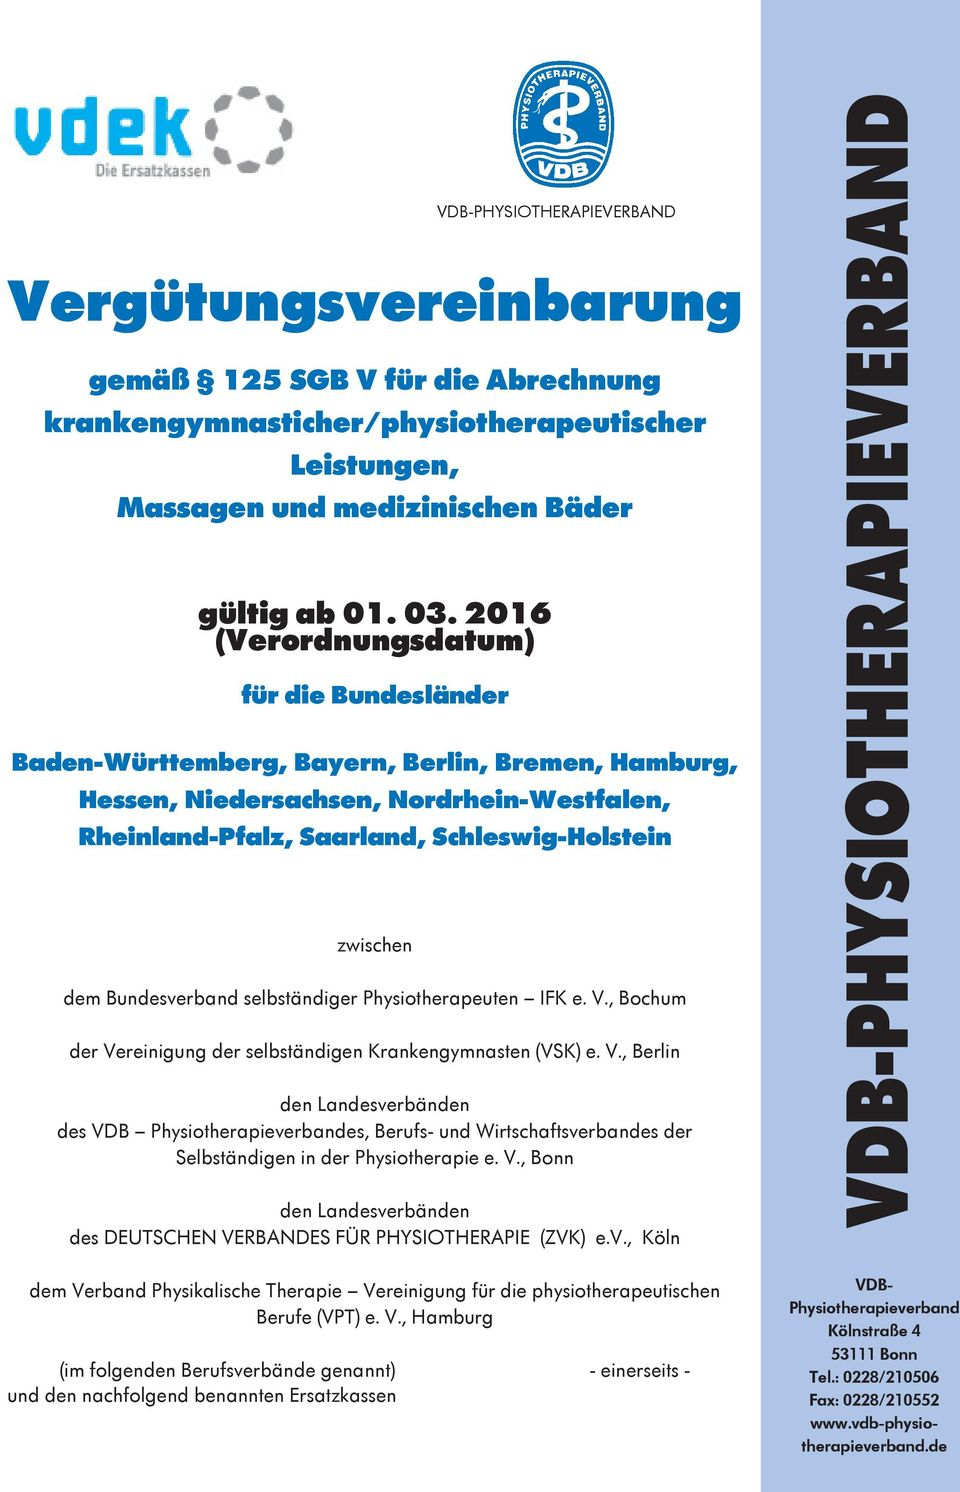 VDB-PHYSIOTHERAPIEVERBAND dem Bundesverband selbständiger Physiotherapeuten IFK e. V.